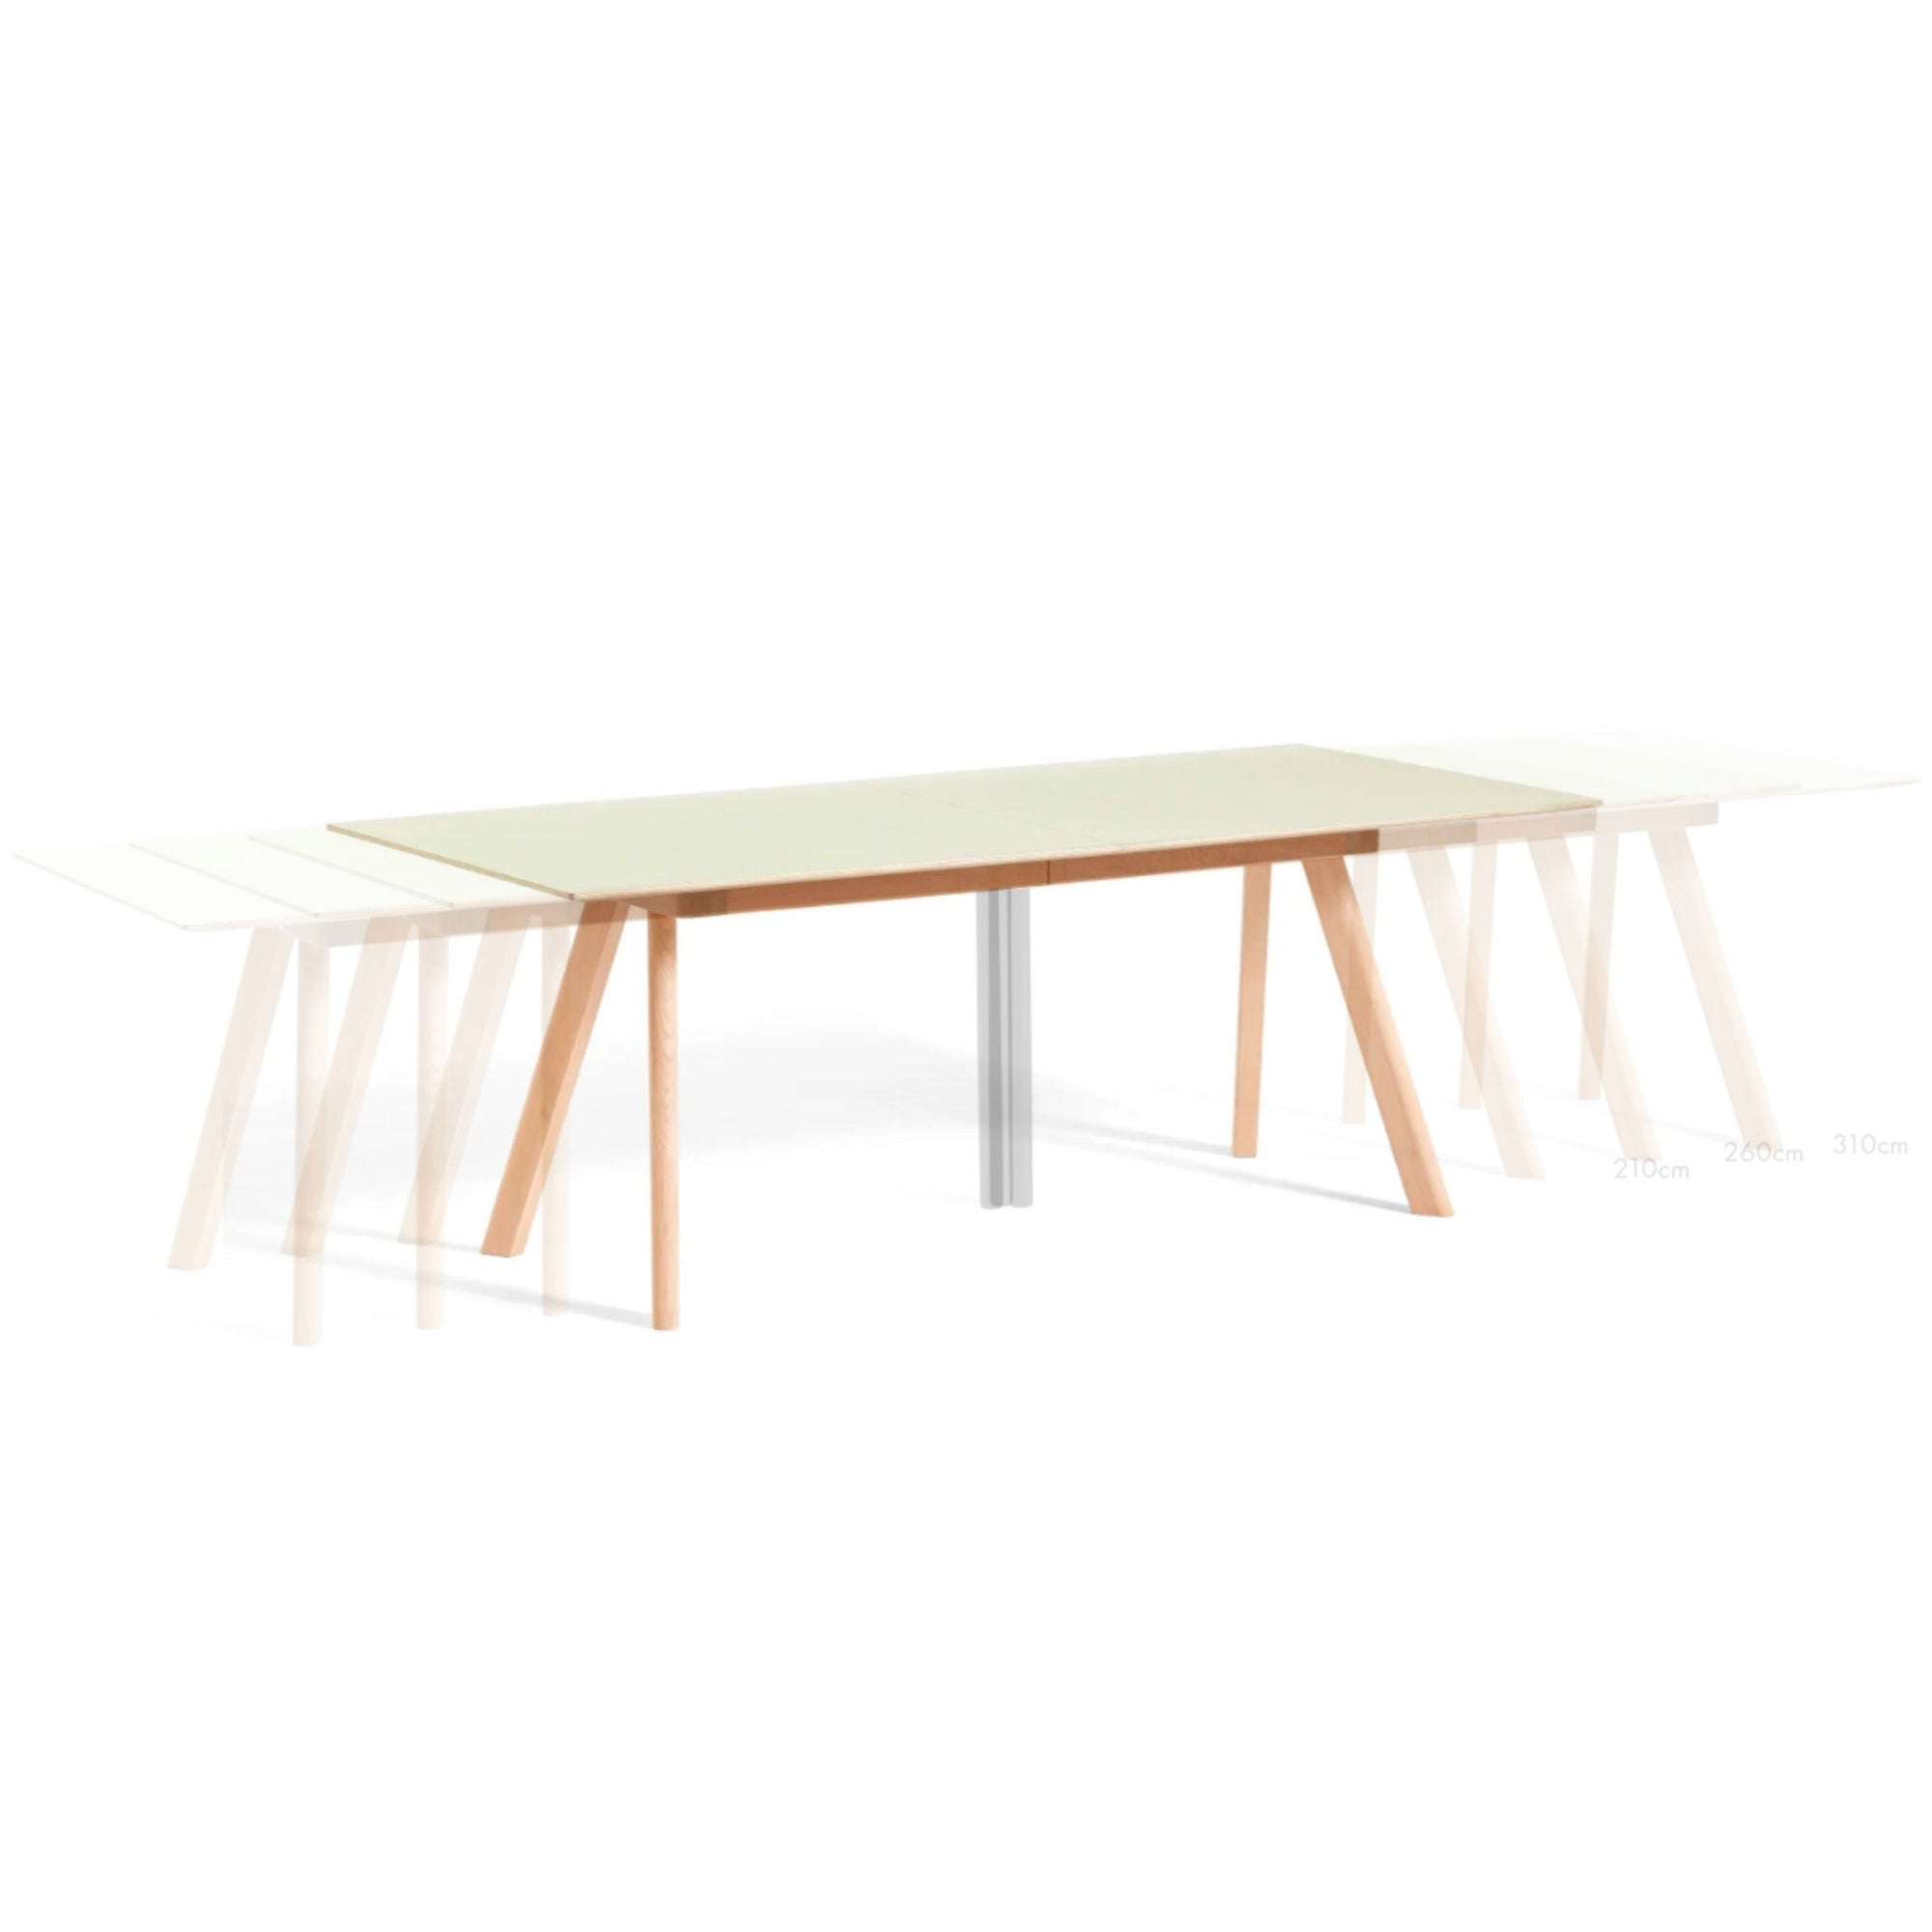 HAY Cph30 Extendable Table L160/310xW80 , Off White Linoleum-Matt Lacquered Oak